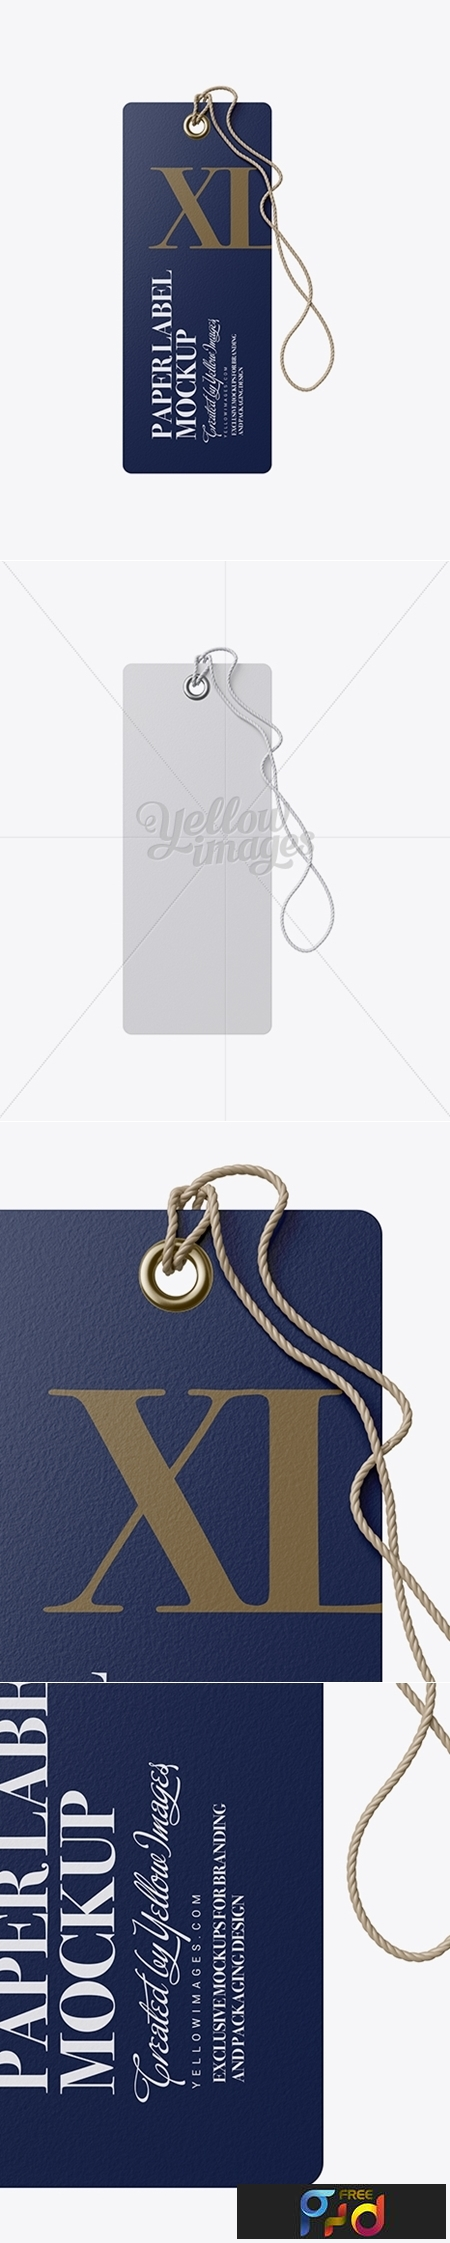 Paper Label With Rope Mockup 19092 1